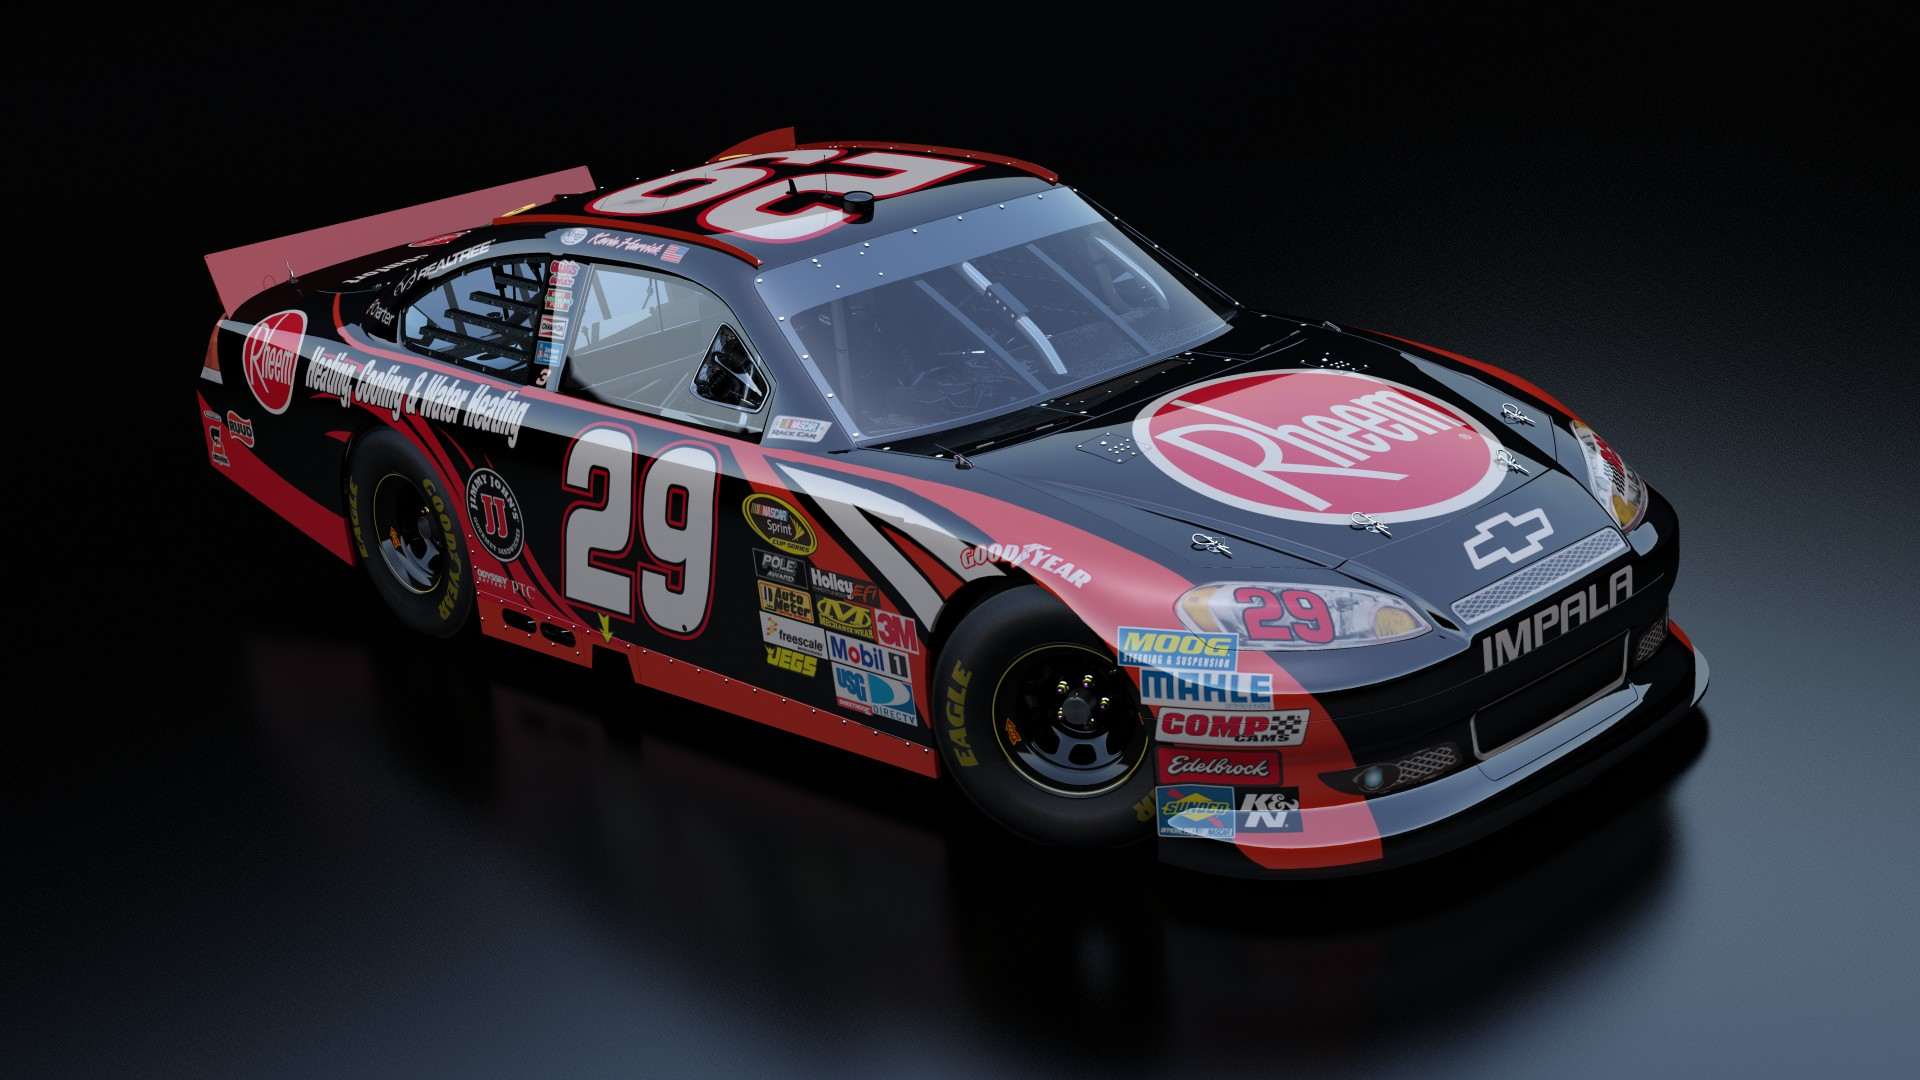 29_KEVIN_HARVICK